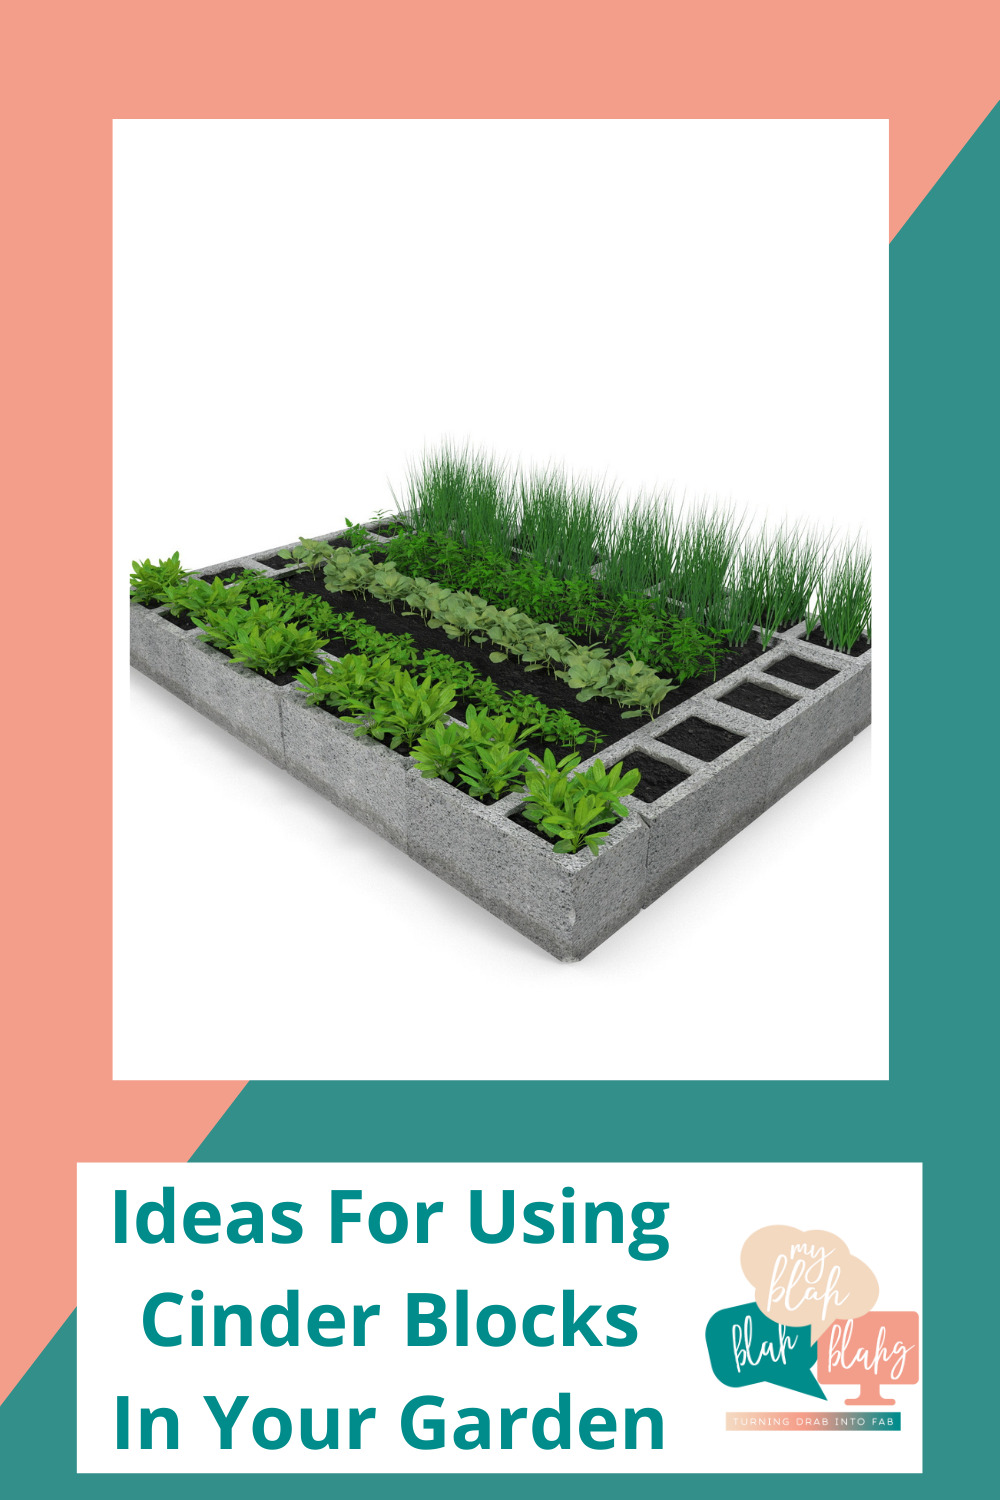 Myblahblahblahg.com has fun ideas for every season! Get ready for the warmer months with cheery florals and inspired projects! These DIY cinder block garden ideas have a fresh, modern flair!